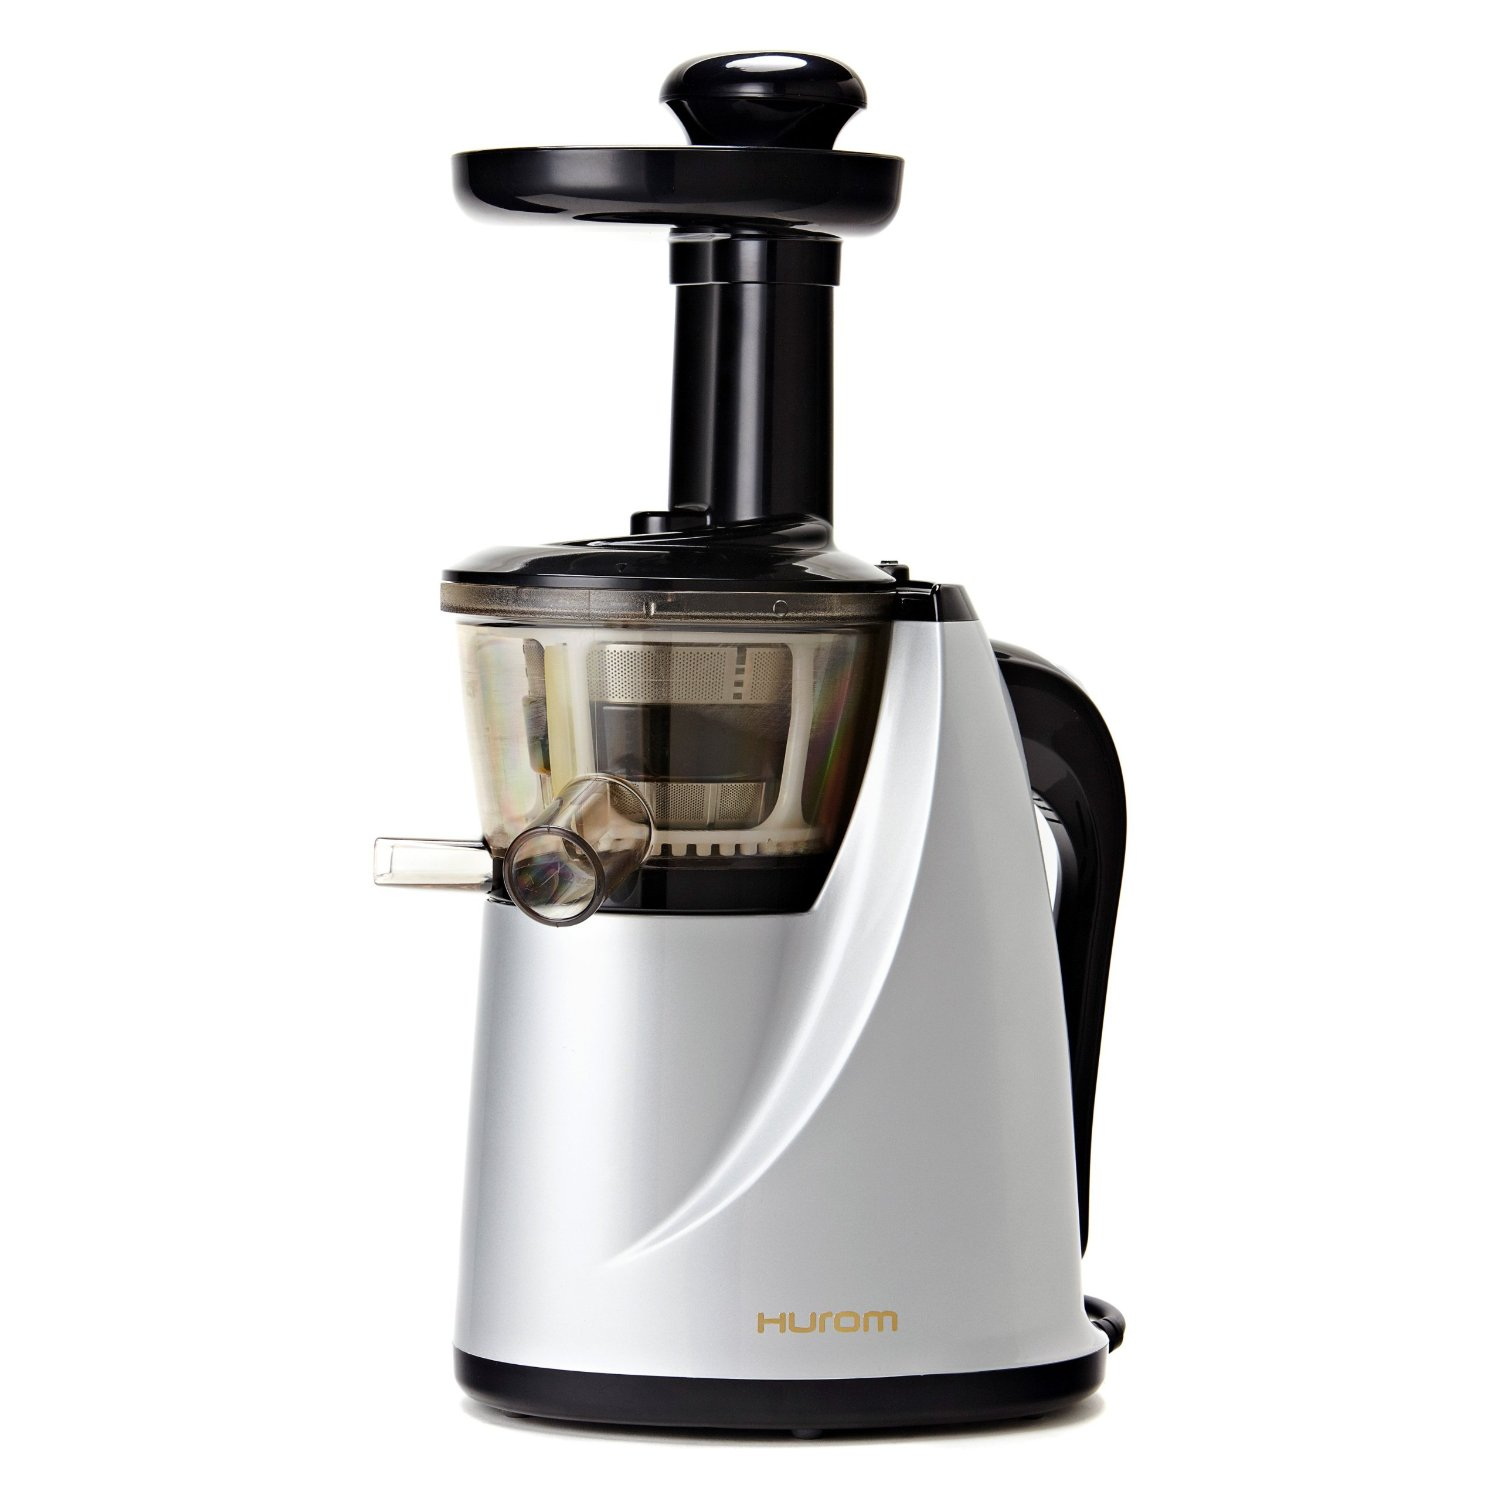 Wonderchef Hurom Slow Juicer With Cap : Hurom HU-100 Masticating Slow Juicer Review - Best Cold Press Juicers